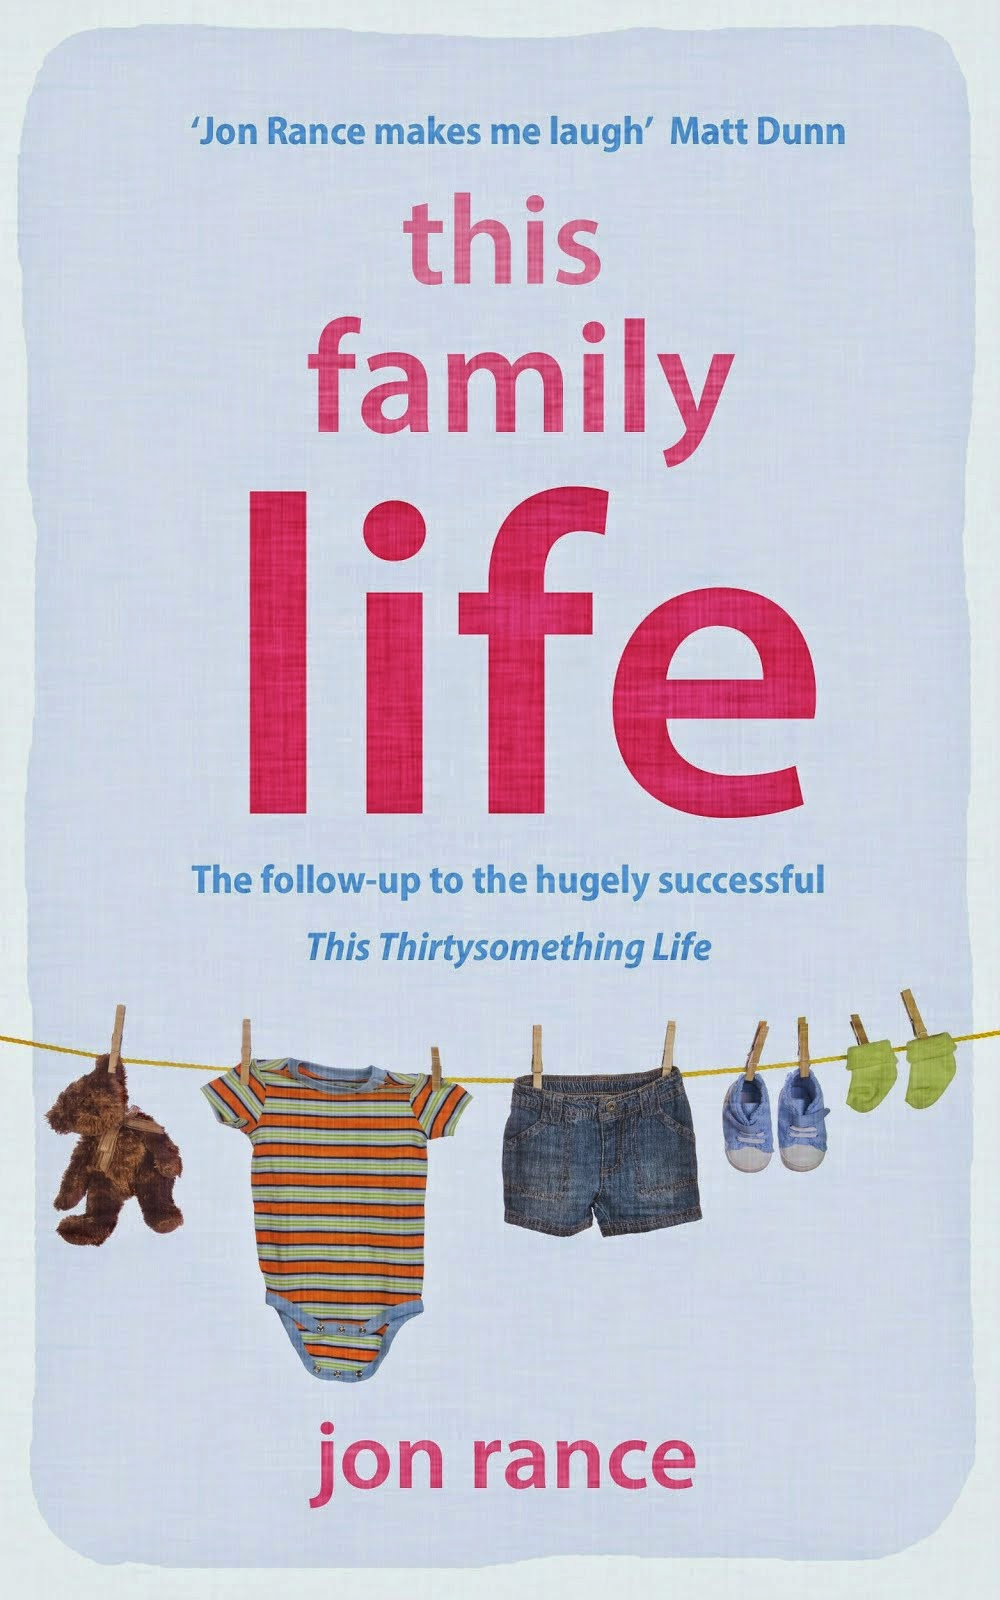 BUY THIS FAMILY LIFE 77p!